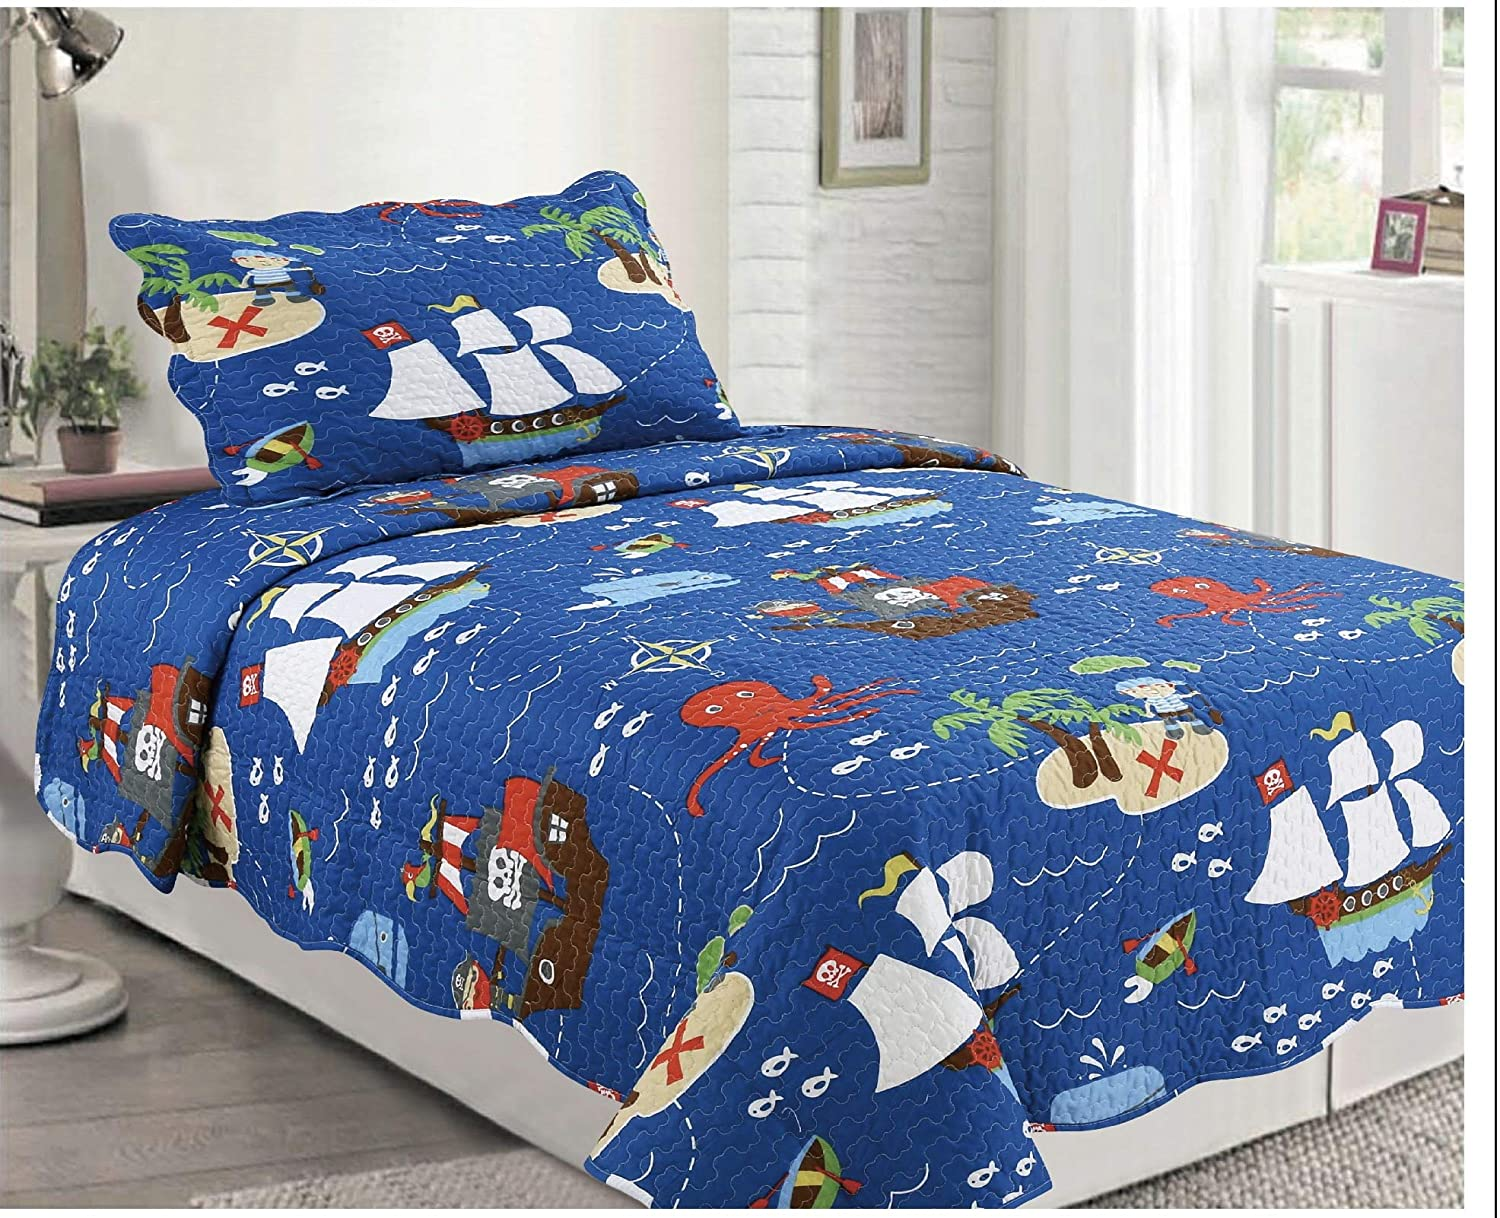 Elegant Home Multicolor Pirates Ships Ocean Sea Themed Design Style 2 Piece Coverlet Bedspread Quilt for Kids Teens Boys Twin Size # 062